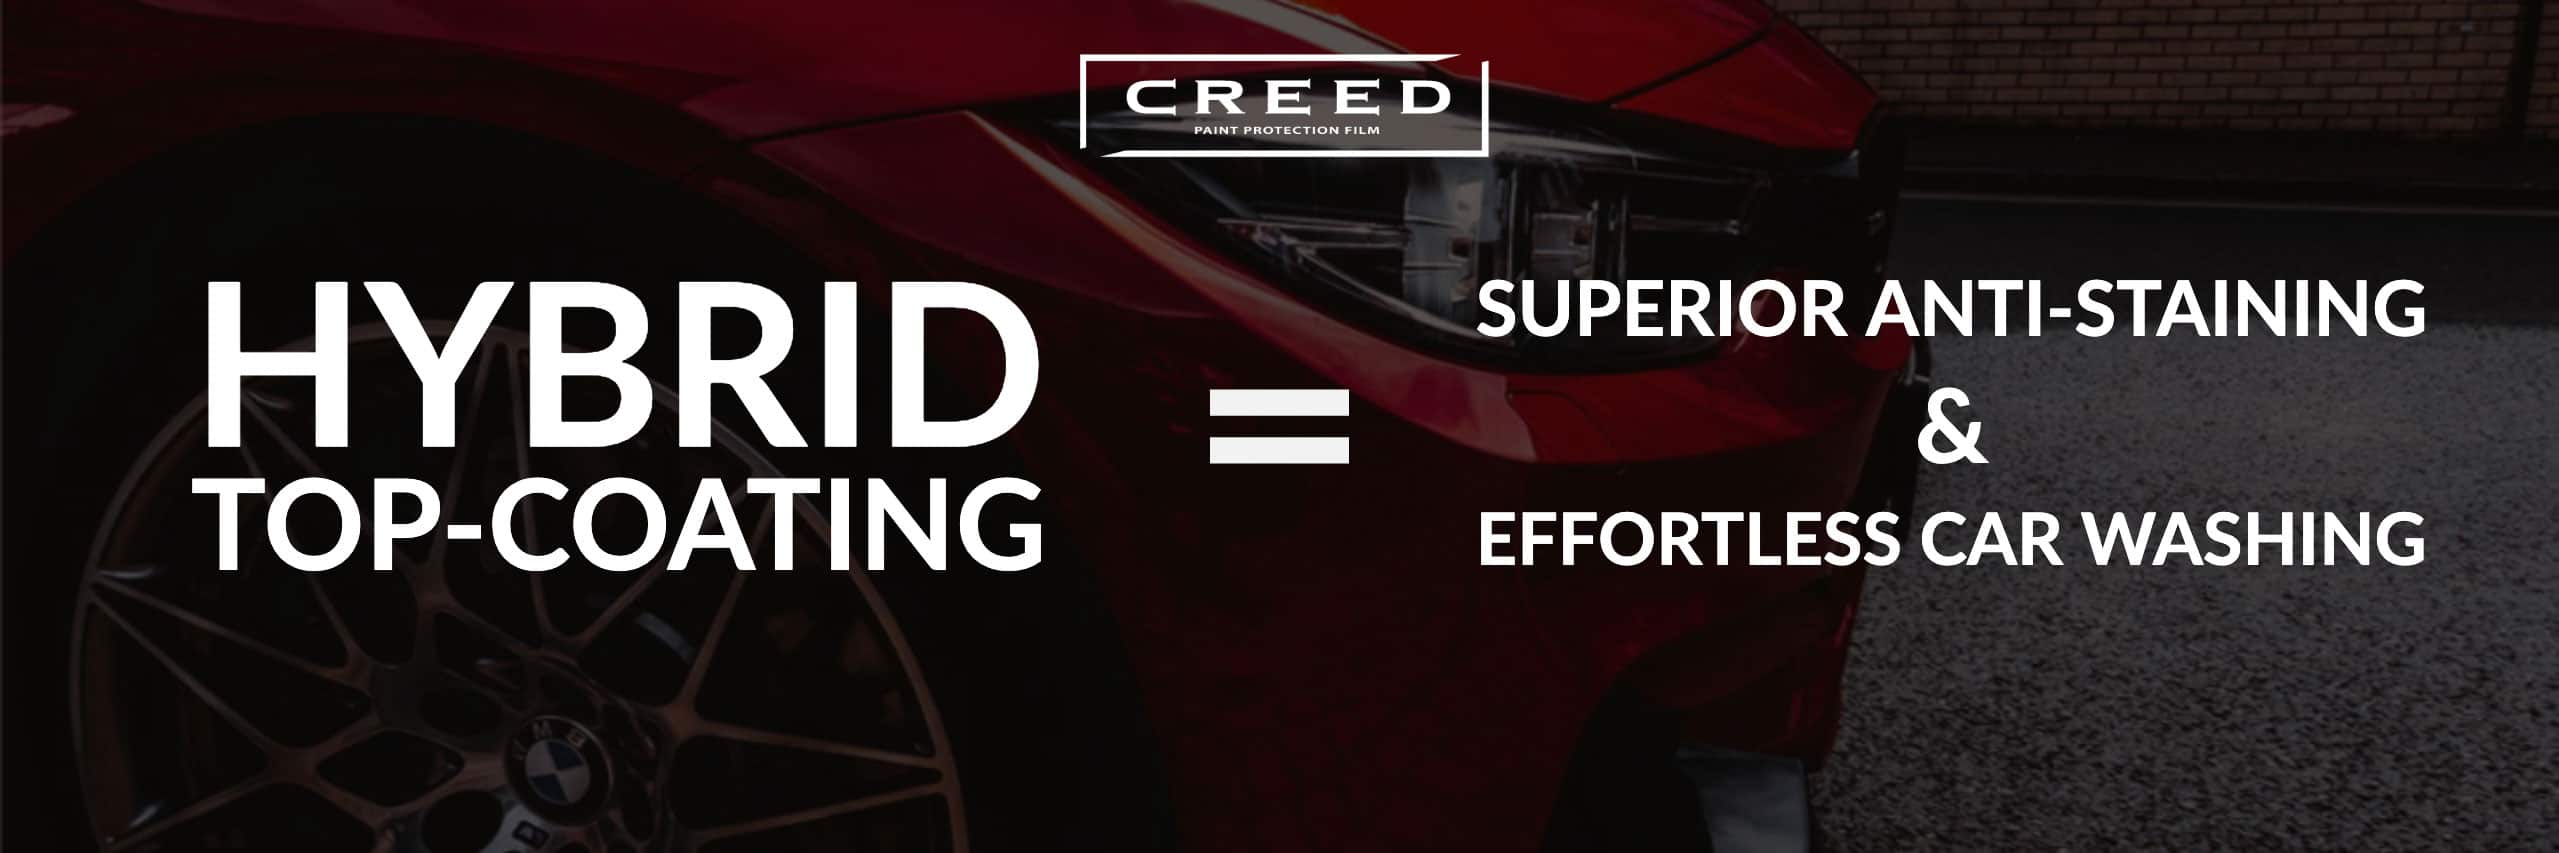 Rayno creed benefits